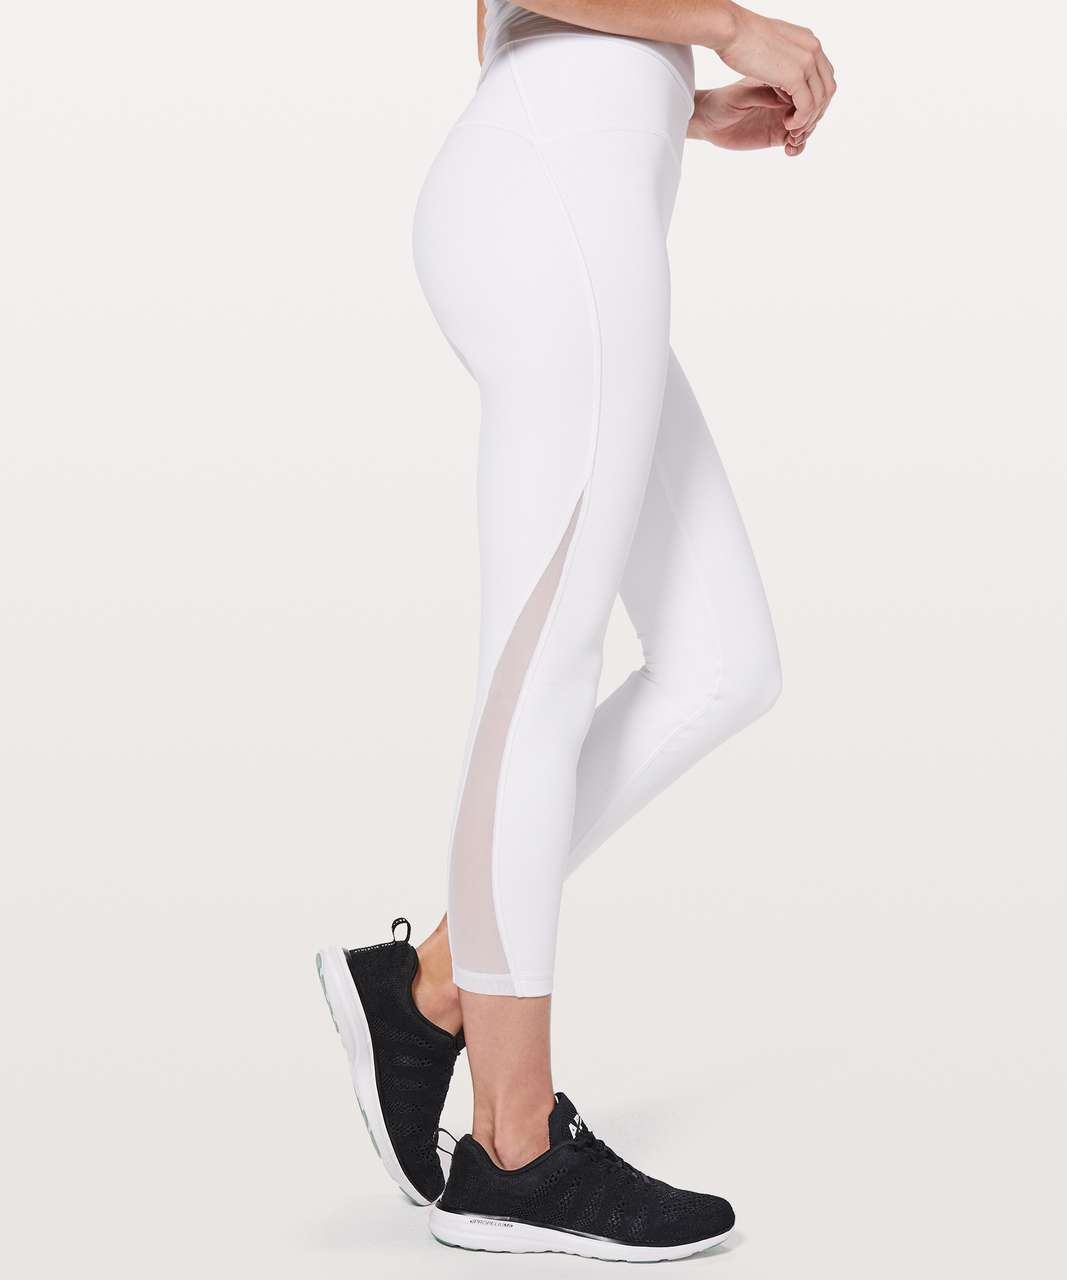 "Lululemon Train Times 7/8 Pant *25"" - White"